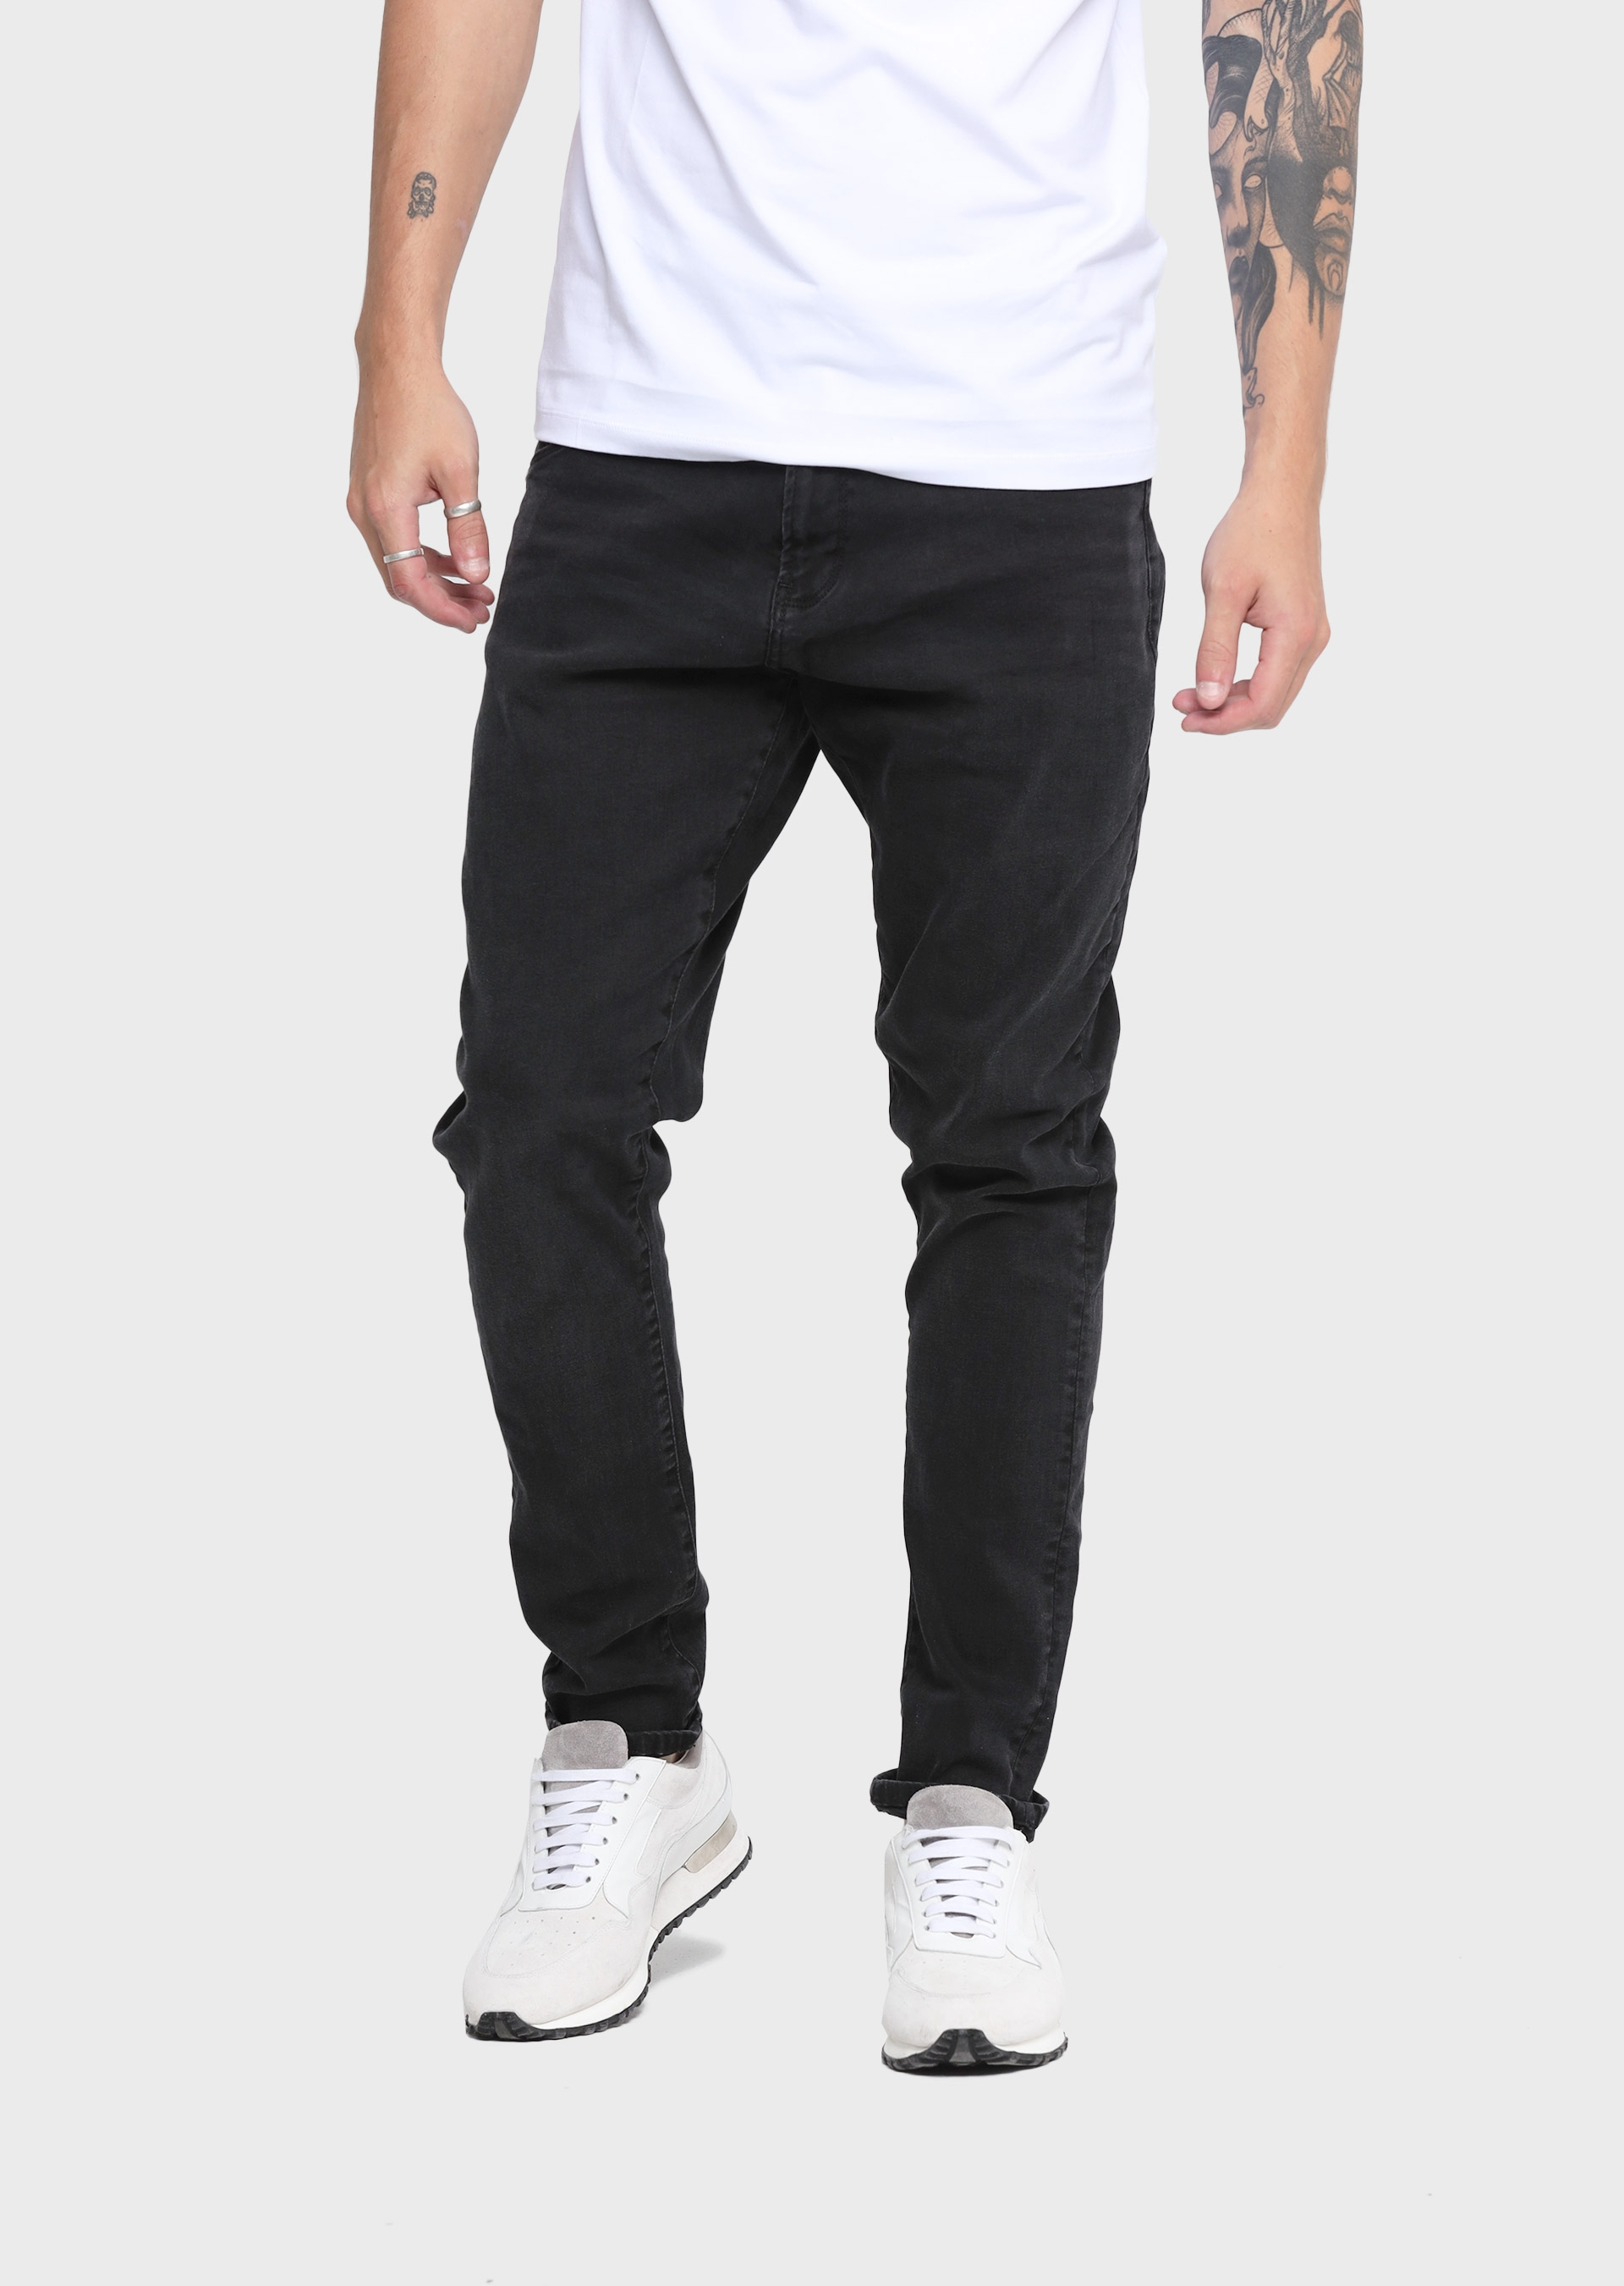 Major LAK 409 Tapered Fit Jeans second_image